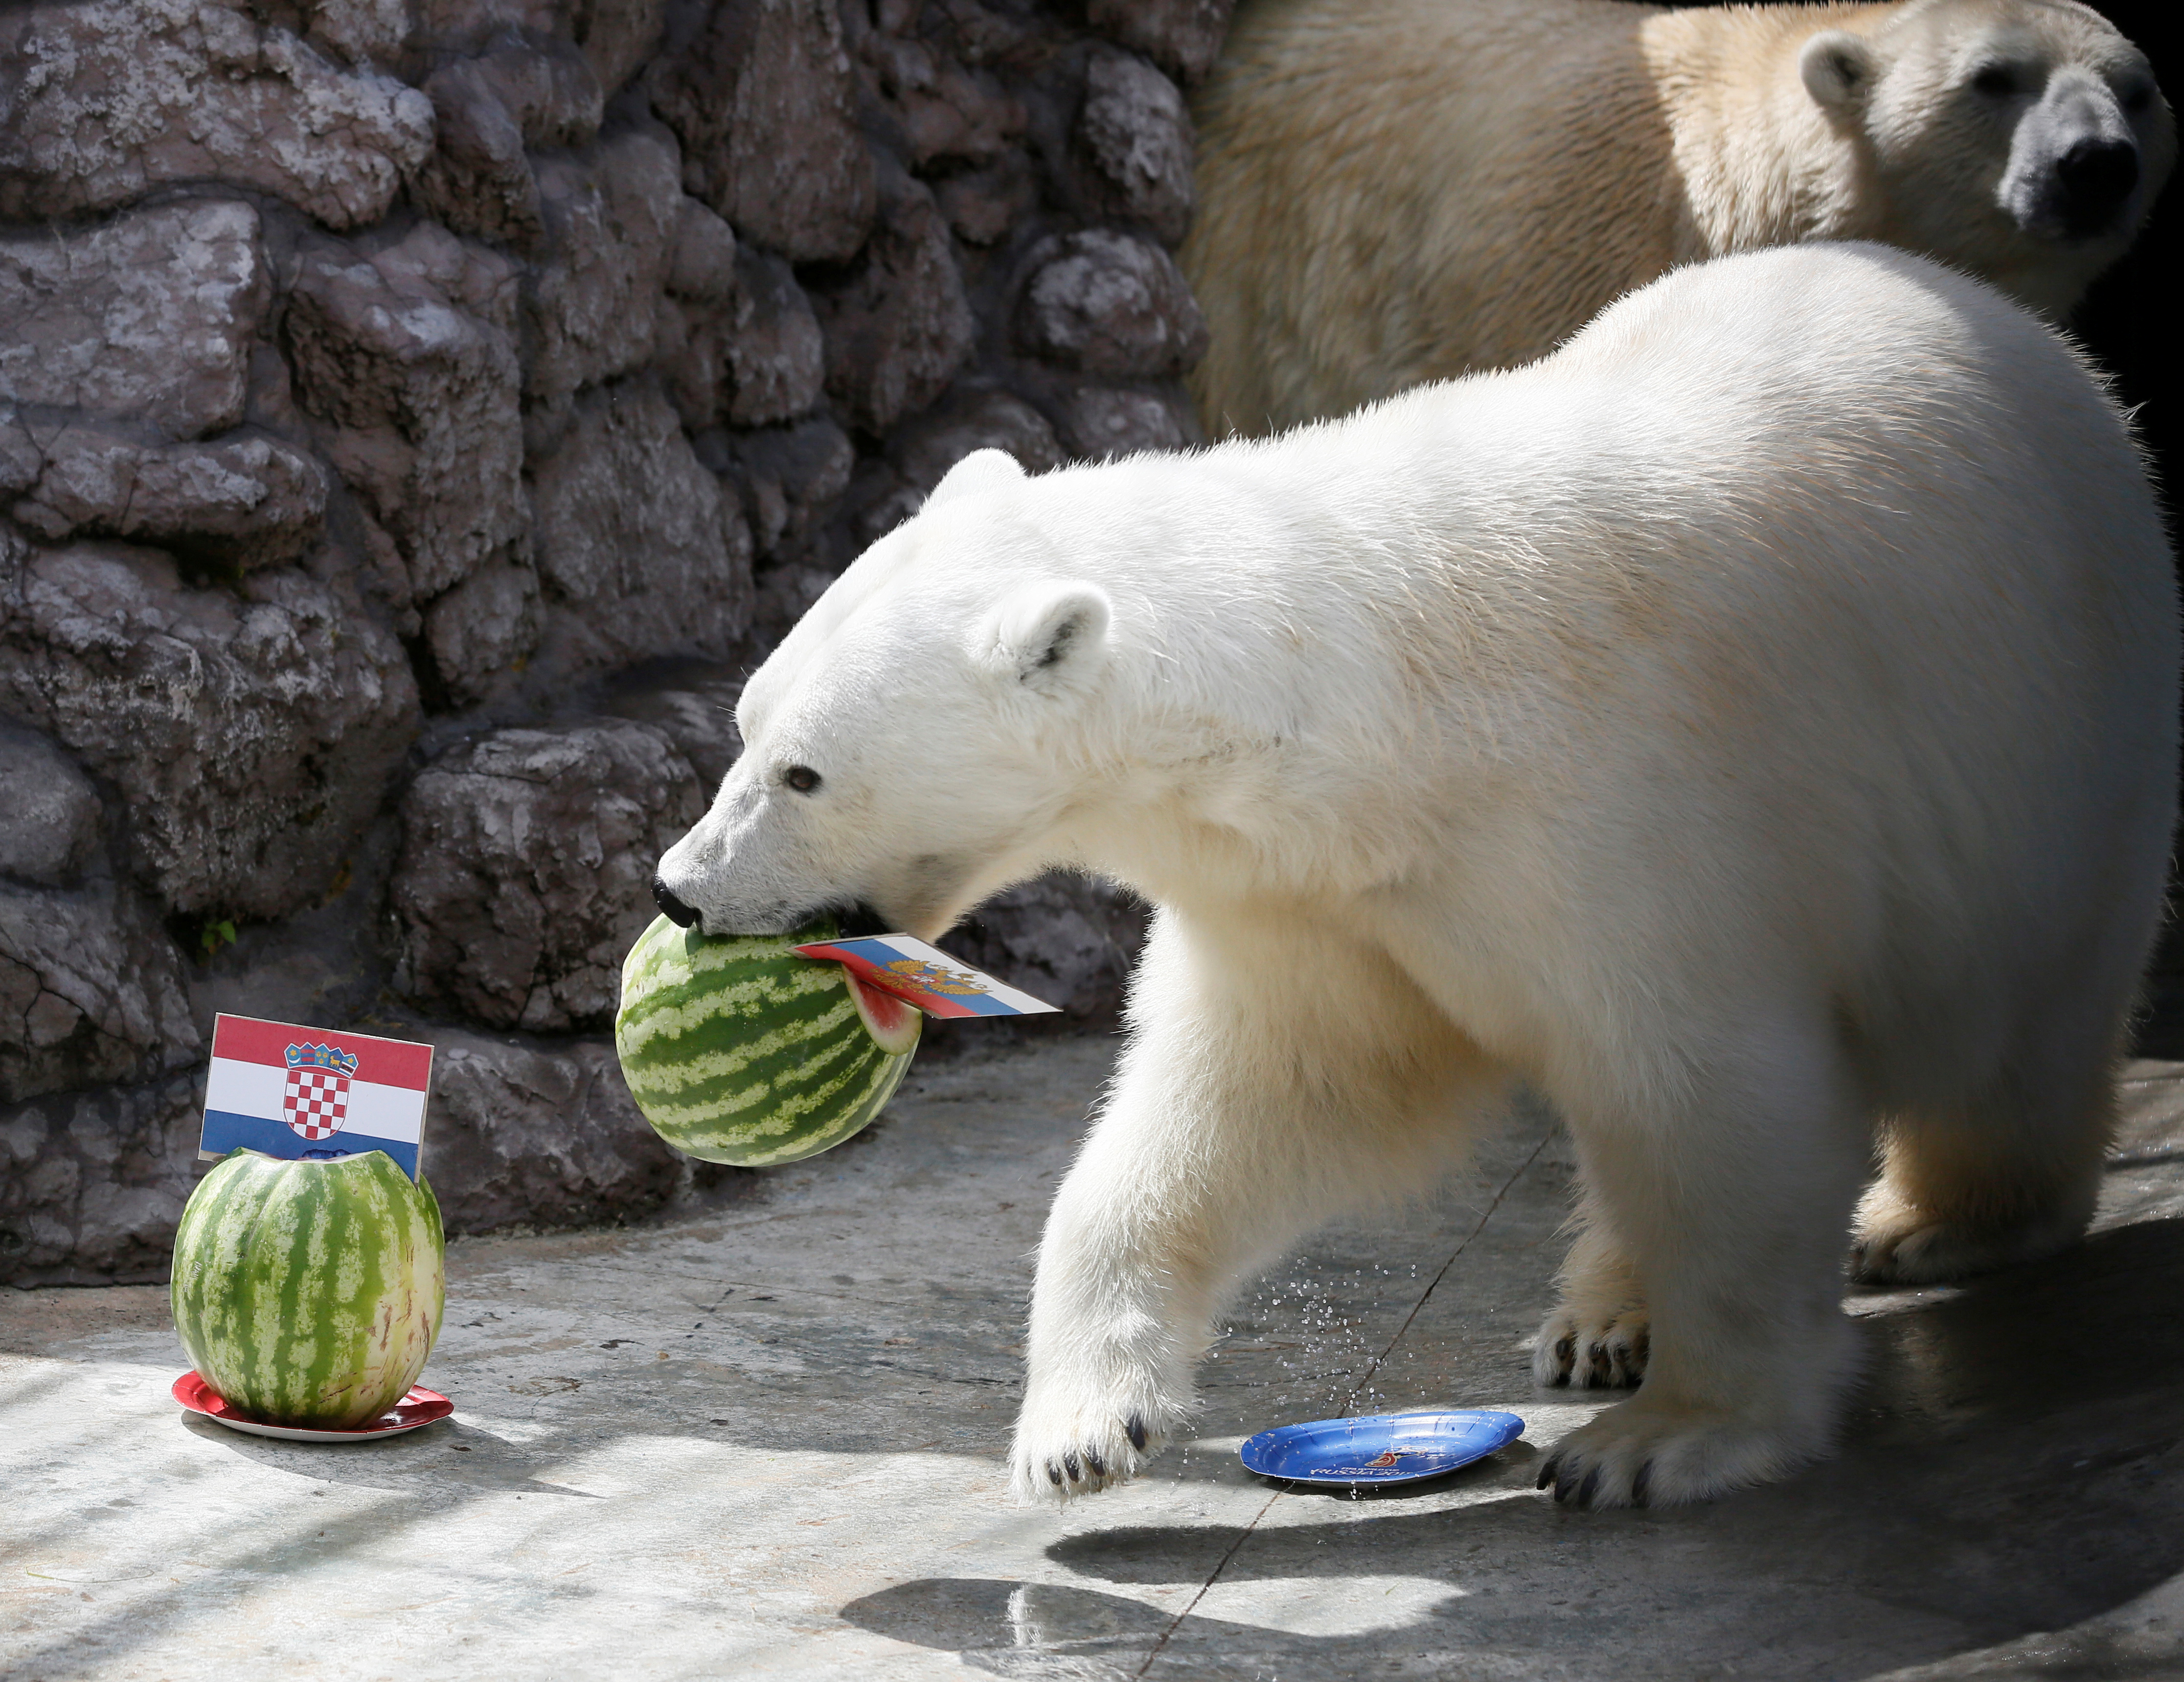 Aurora, an eight-year-old female polar bear, chooses Russia while attempting to predict the result of the soccer World Cup match between Croatia and Russia during an event at the Royev Ruchey Zoo in Krasnoyarsk, Russia July 5, 2018. REUTERS/Ilya Naymushin - RC11065B2DC0